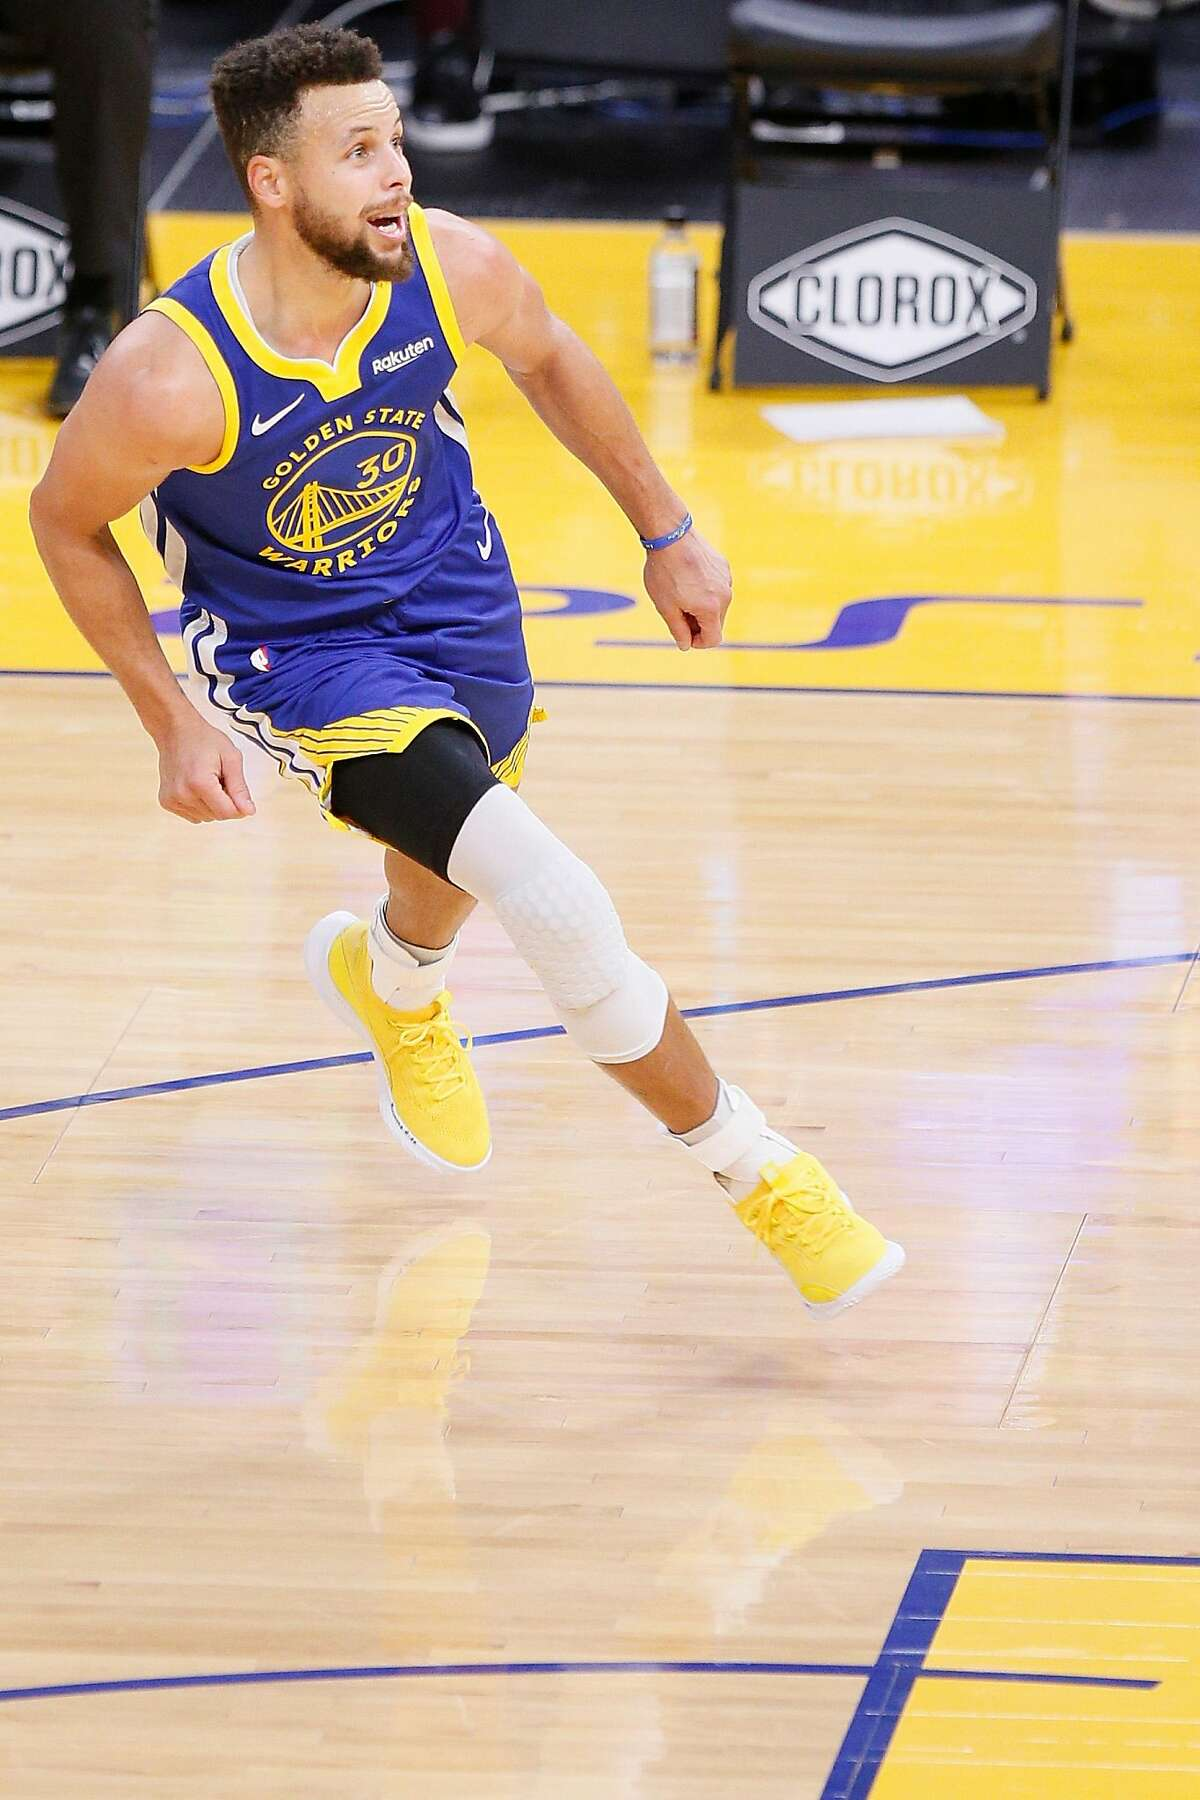 Golden State Warriors guard Stephen Curry (30) reacts after his half court shot nearly went in to end the third quarter of an NBA game against the Charlotte Hornets at Chase Center, Friday, Feb. 26, 2021, in San Francisco, Calif.